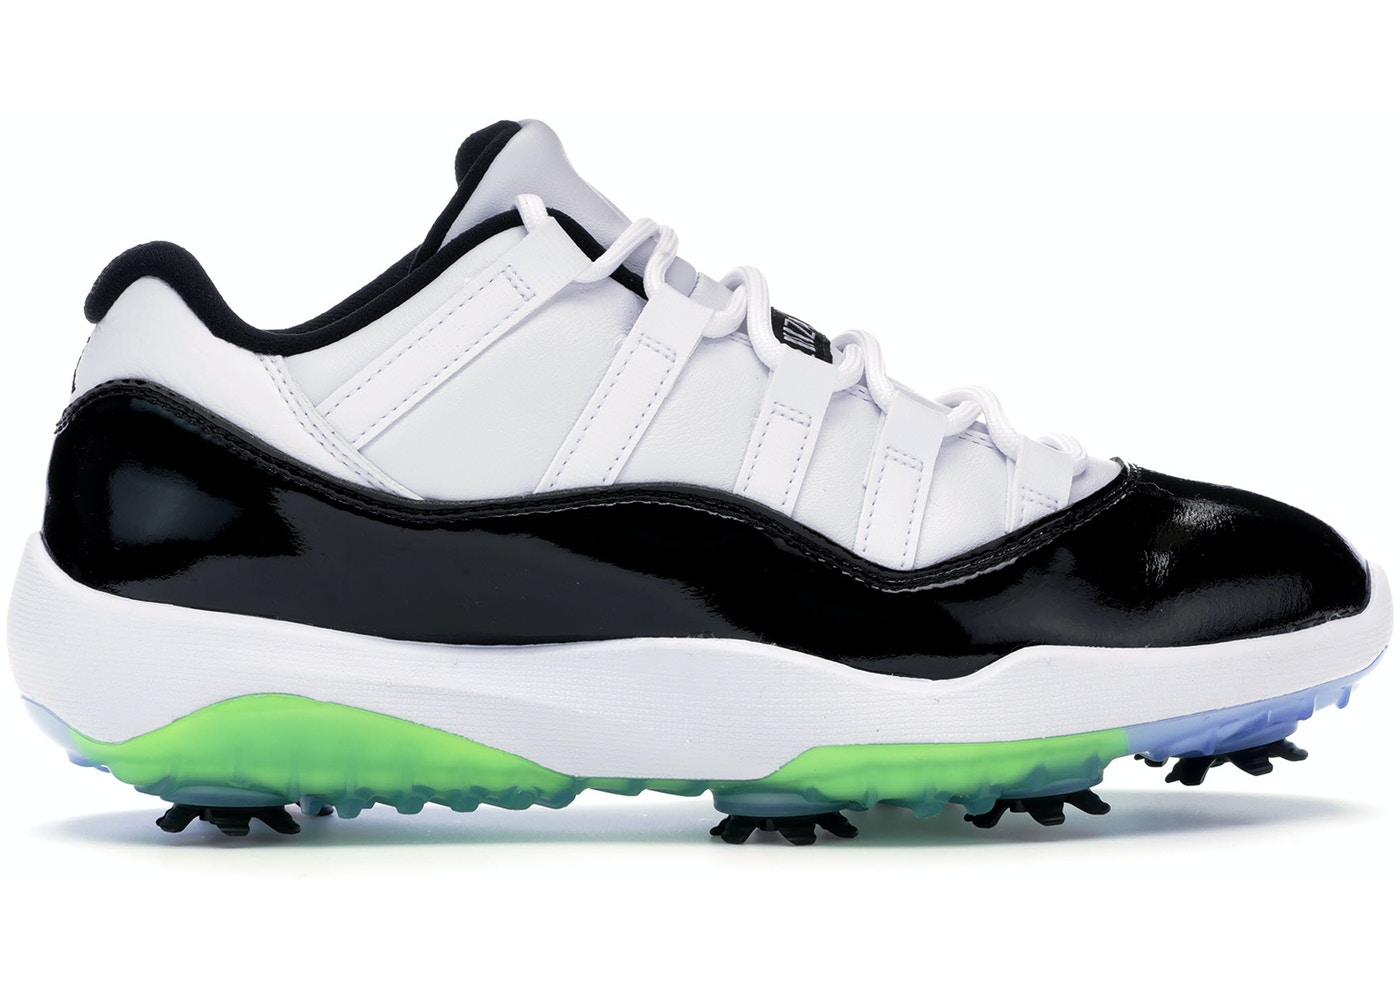 9cabc7b964c Jordan 11 Retro Low Golf Concord - AQ0963-101